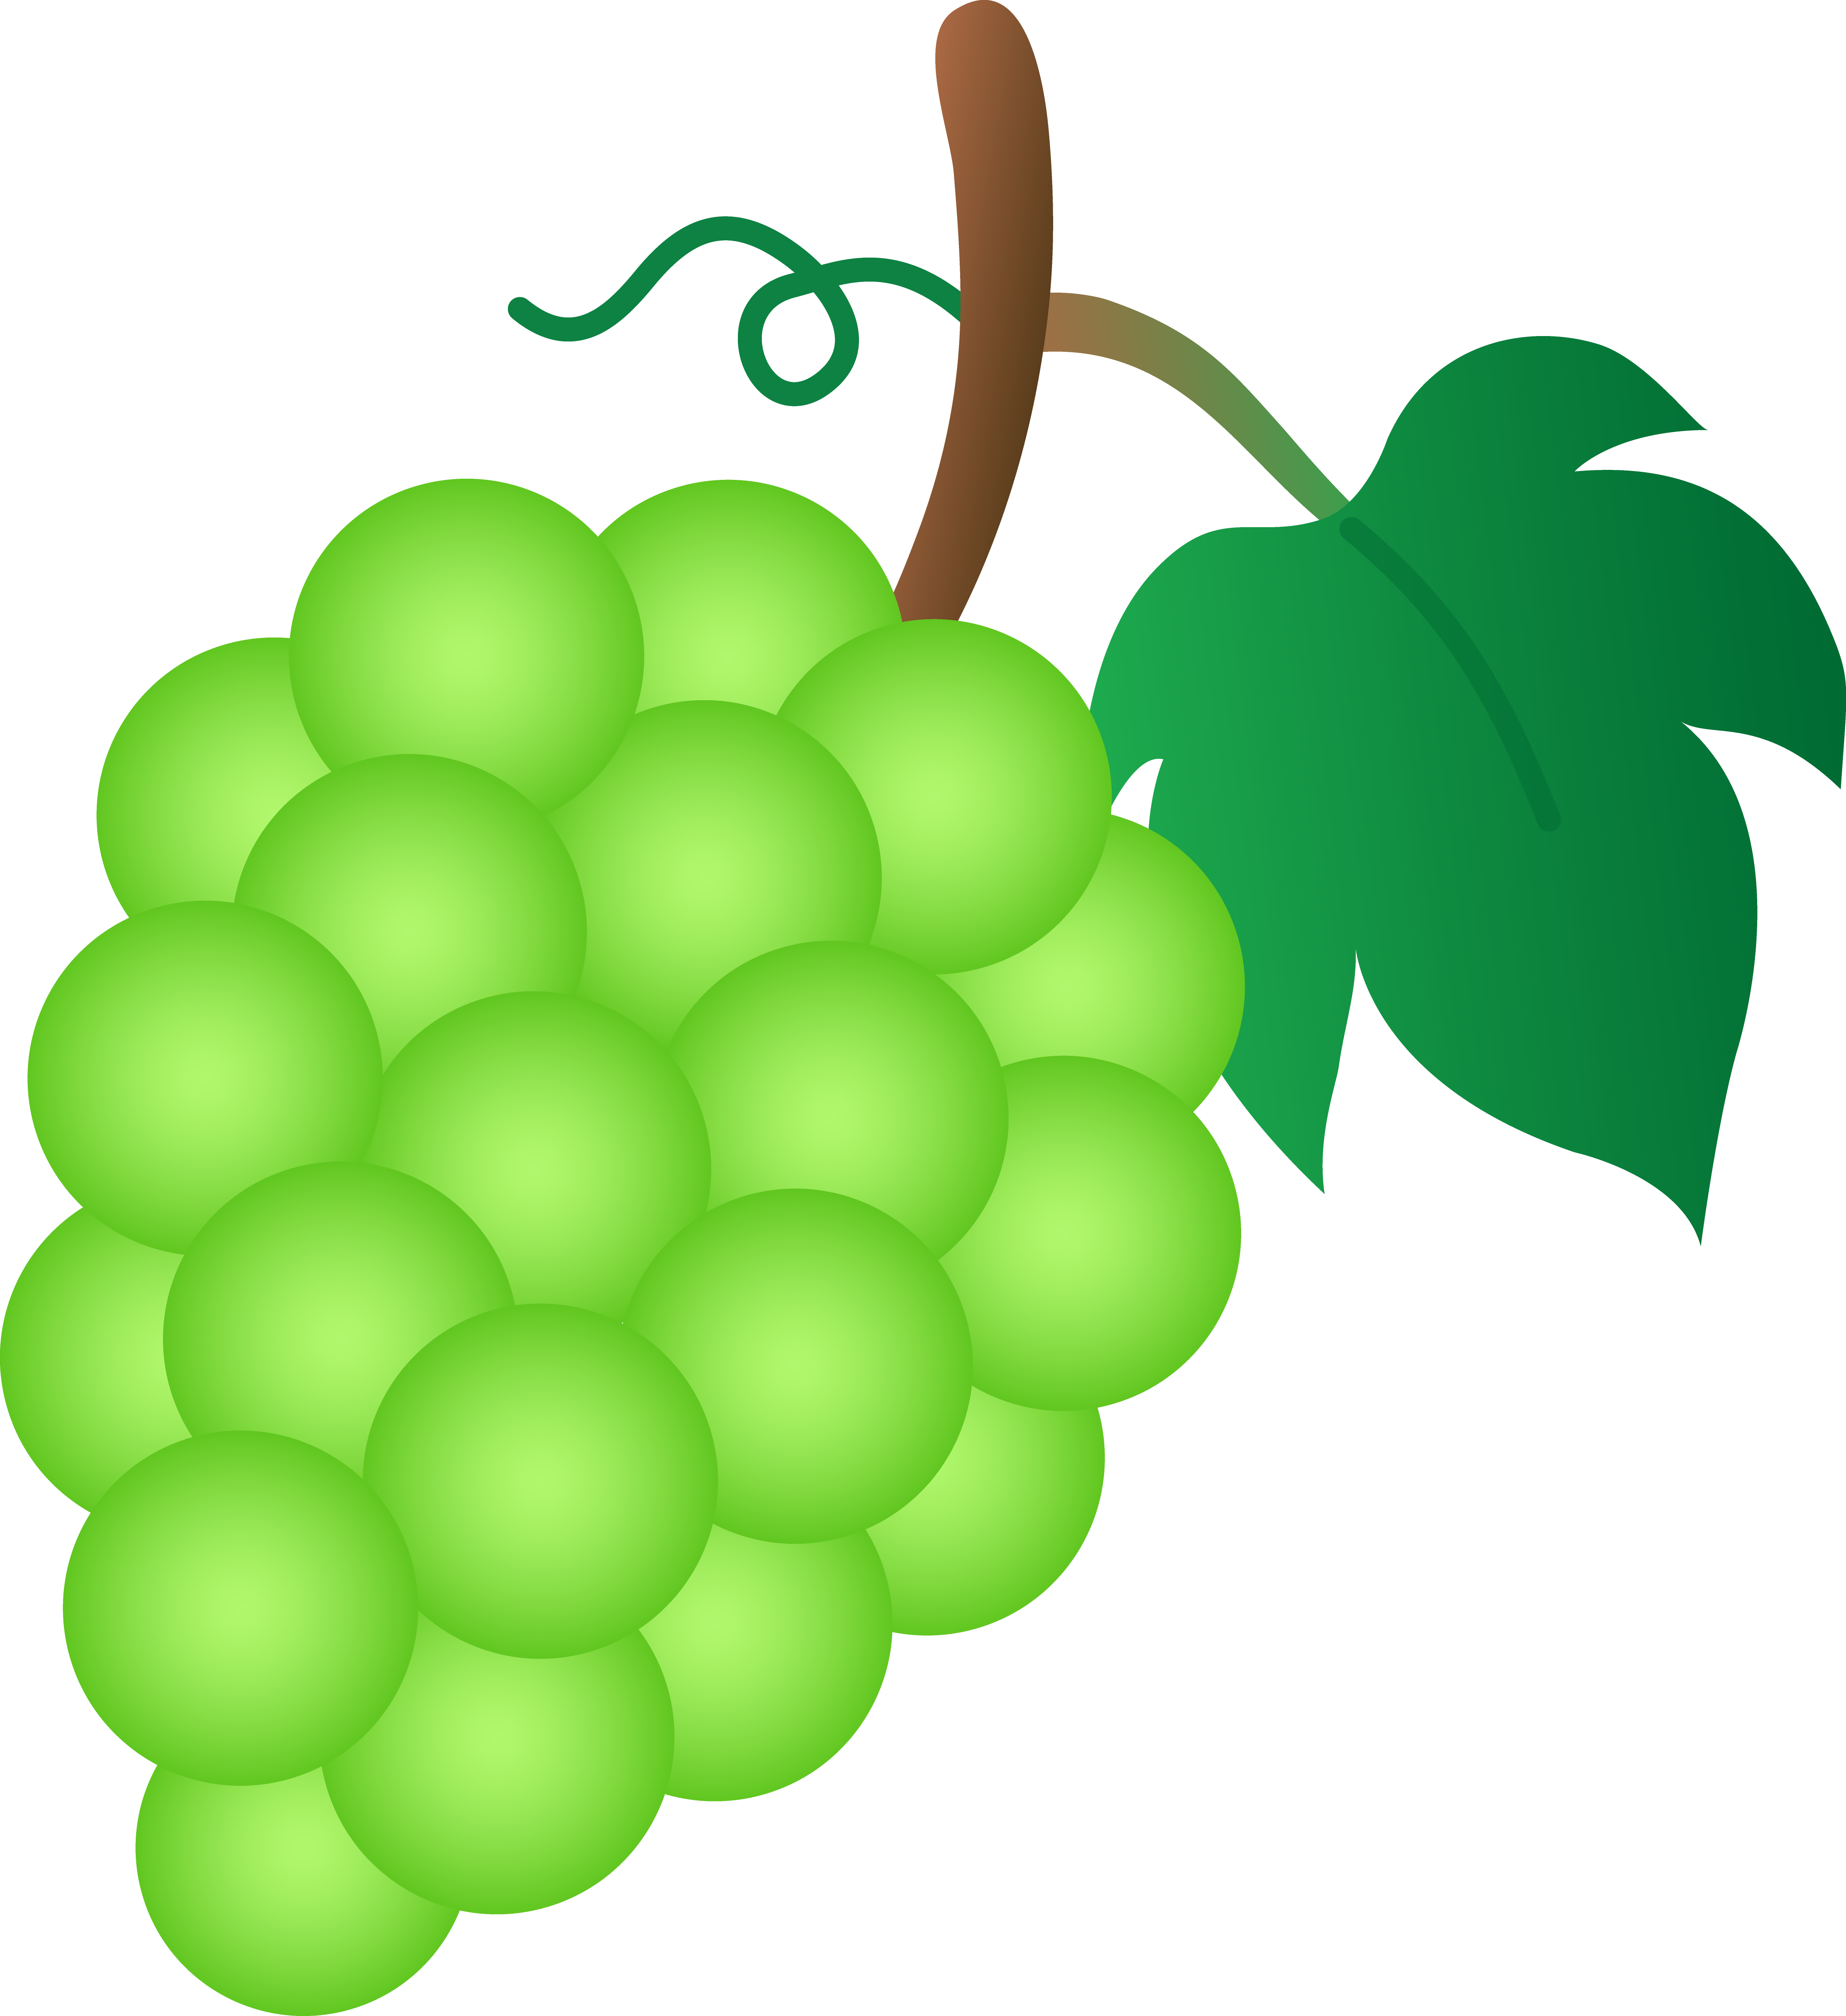 Grapes Clipart Free | Clipart library - Free Clipart Images